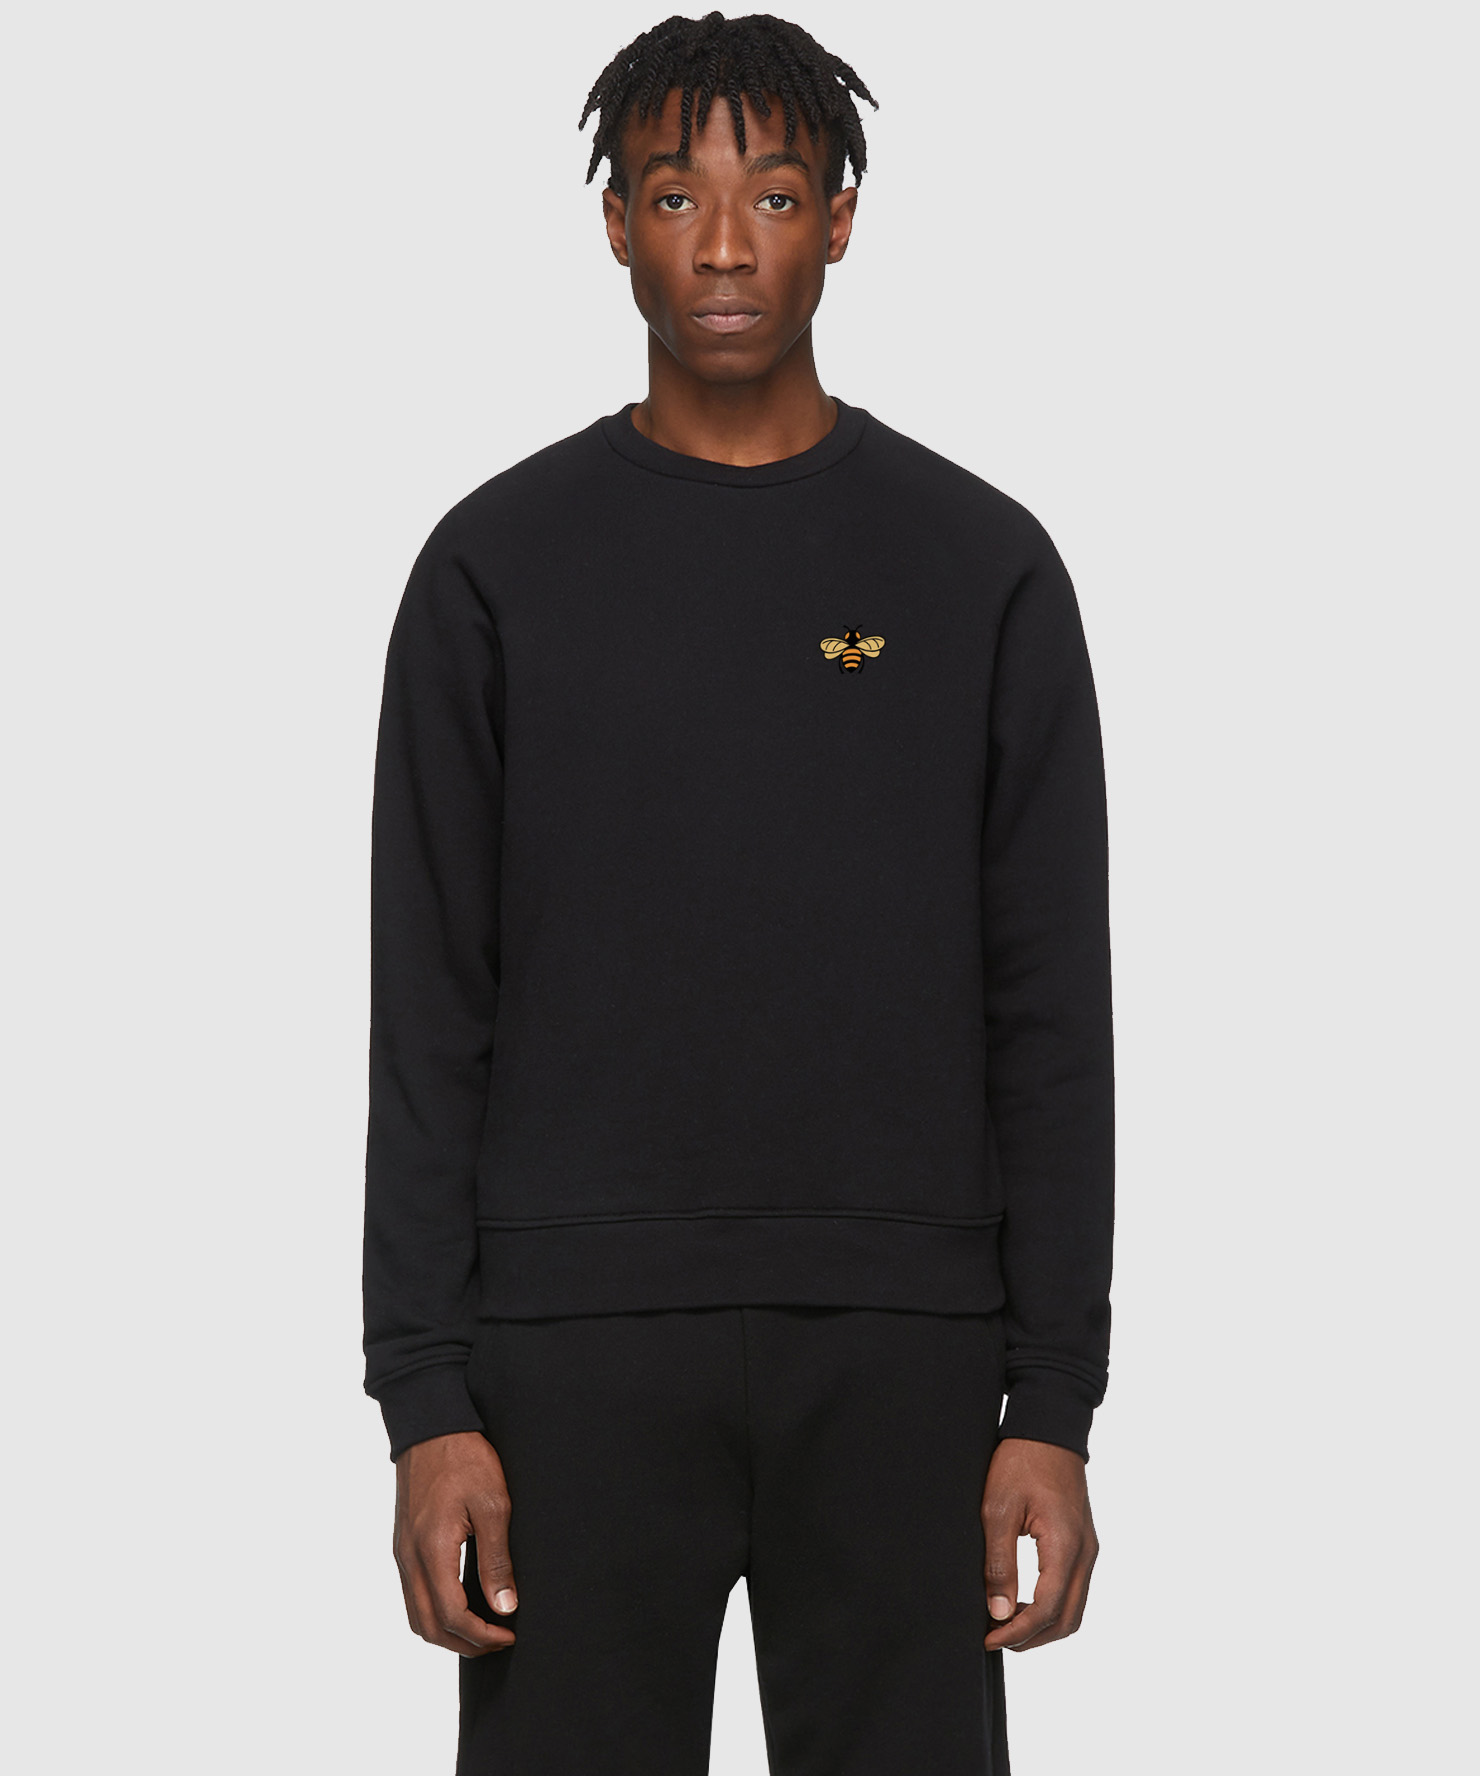 Crew Sweatshirt Bee 1 - Checkout Page